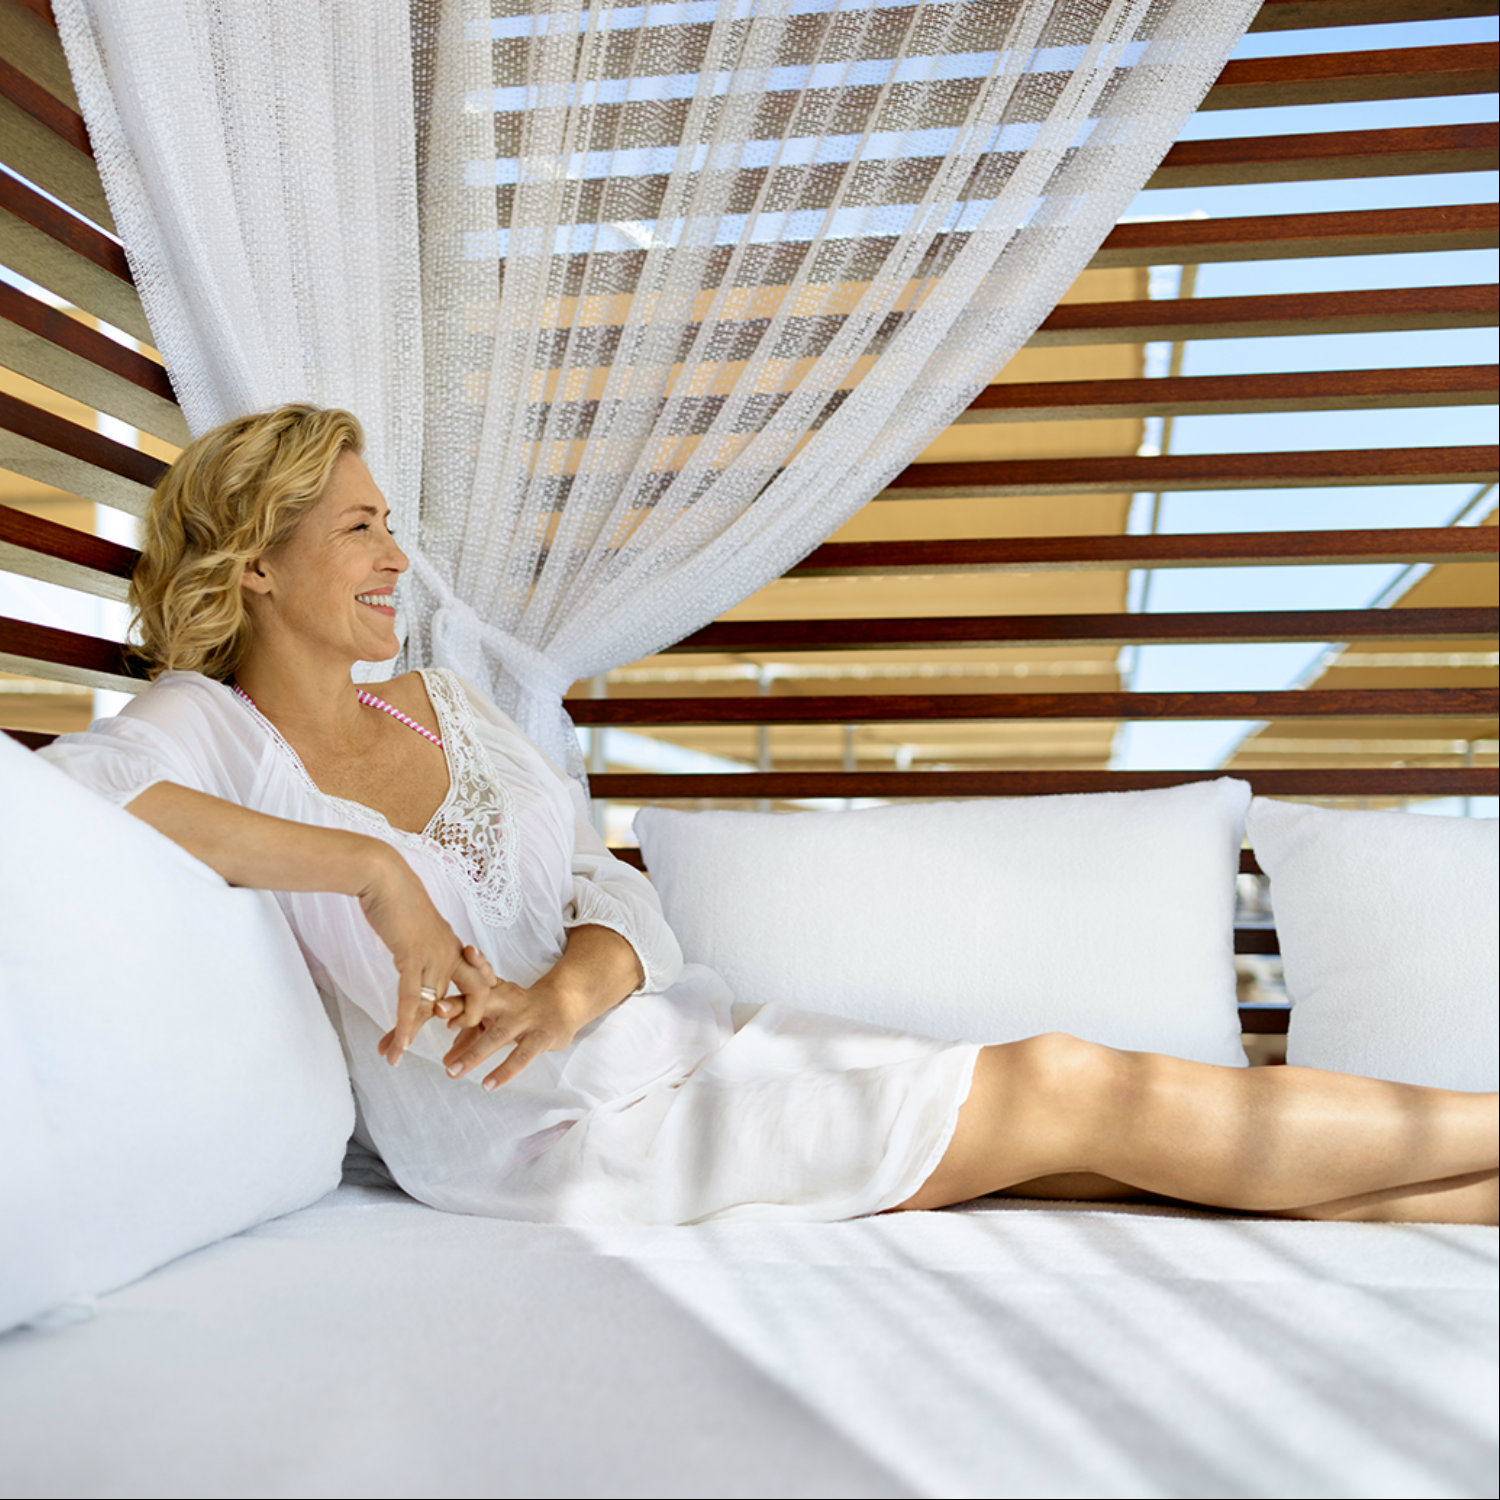 Blonde woman relaxing in a daybed before check-out